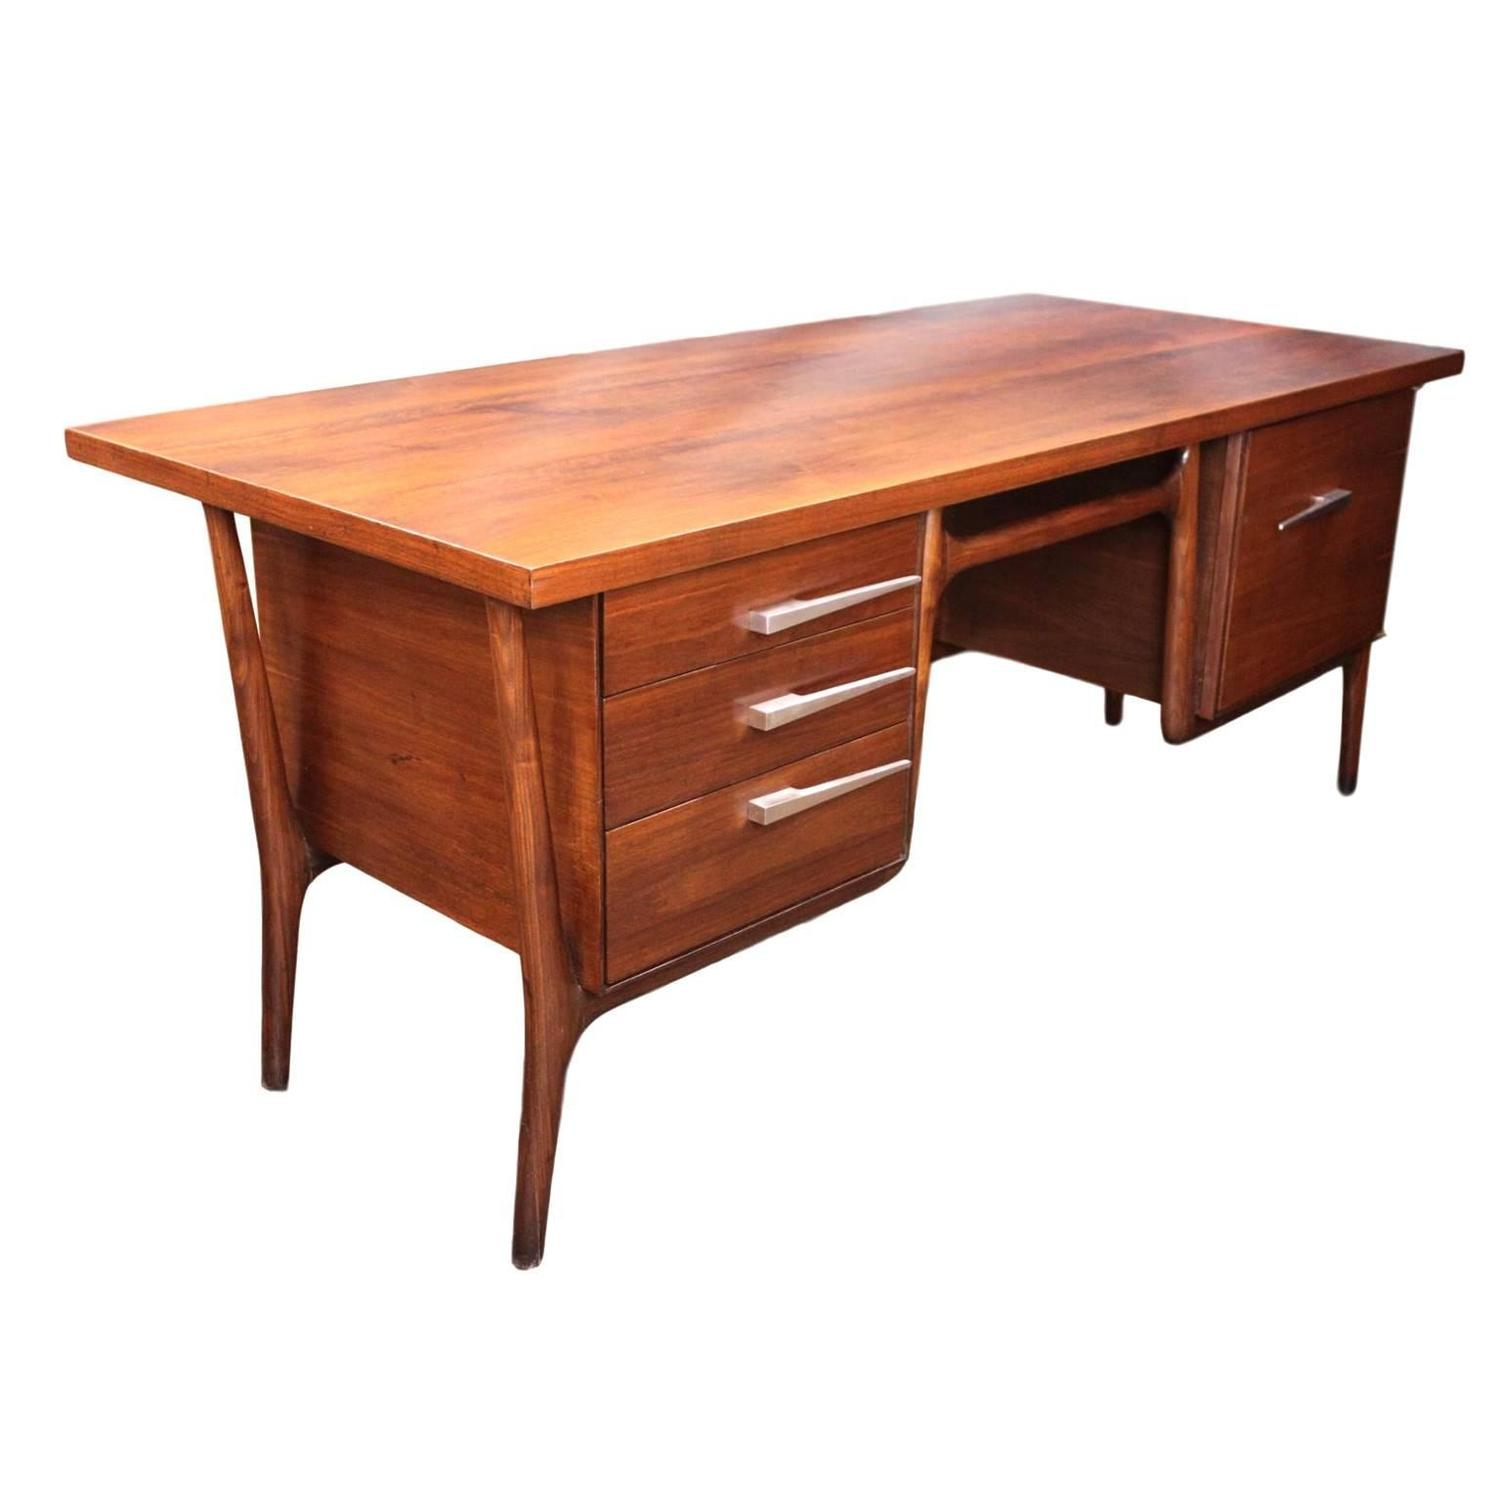 Custom executive desks - Iconic 1950s Mid Century Modern Walnut Executive Desk By Leopold Desk Co For Sale At 1stdibs